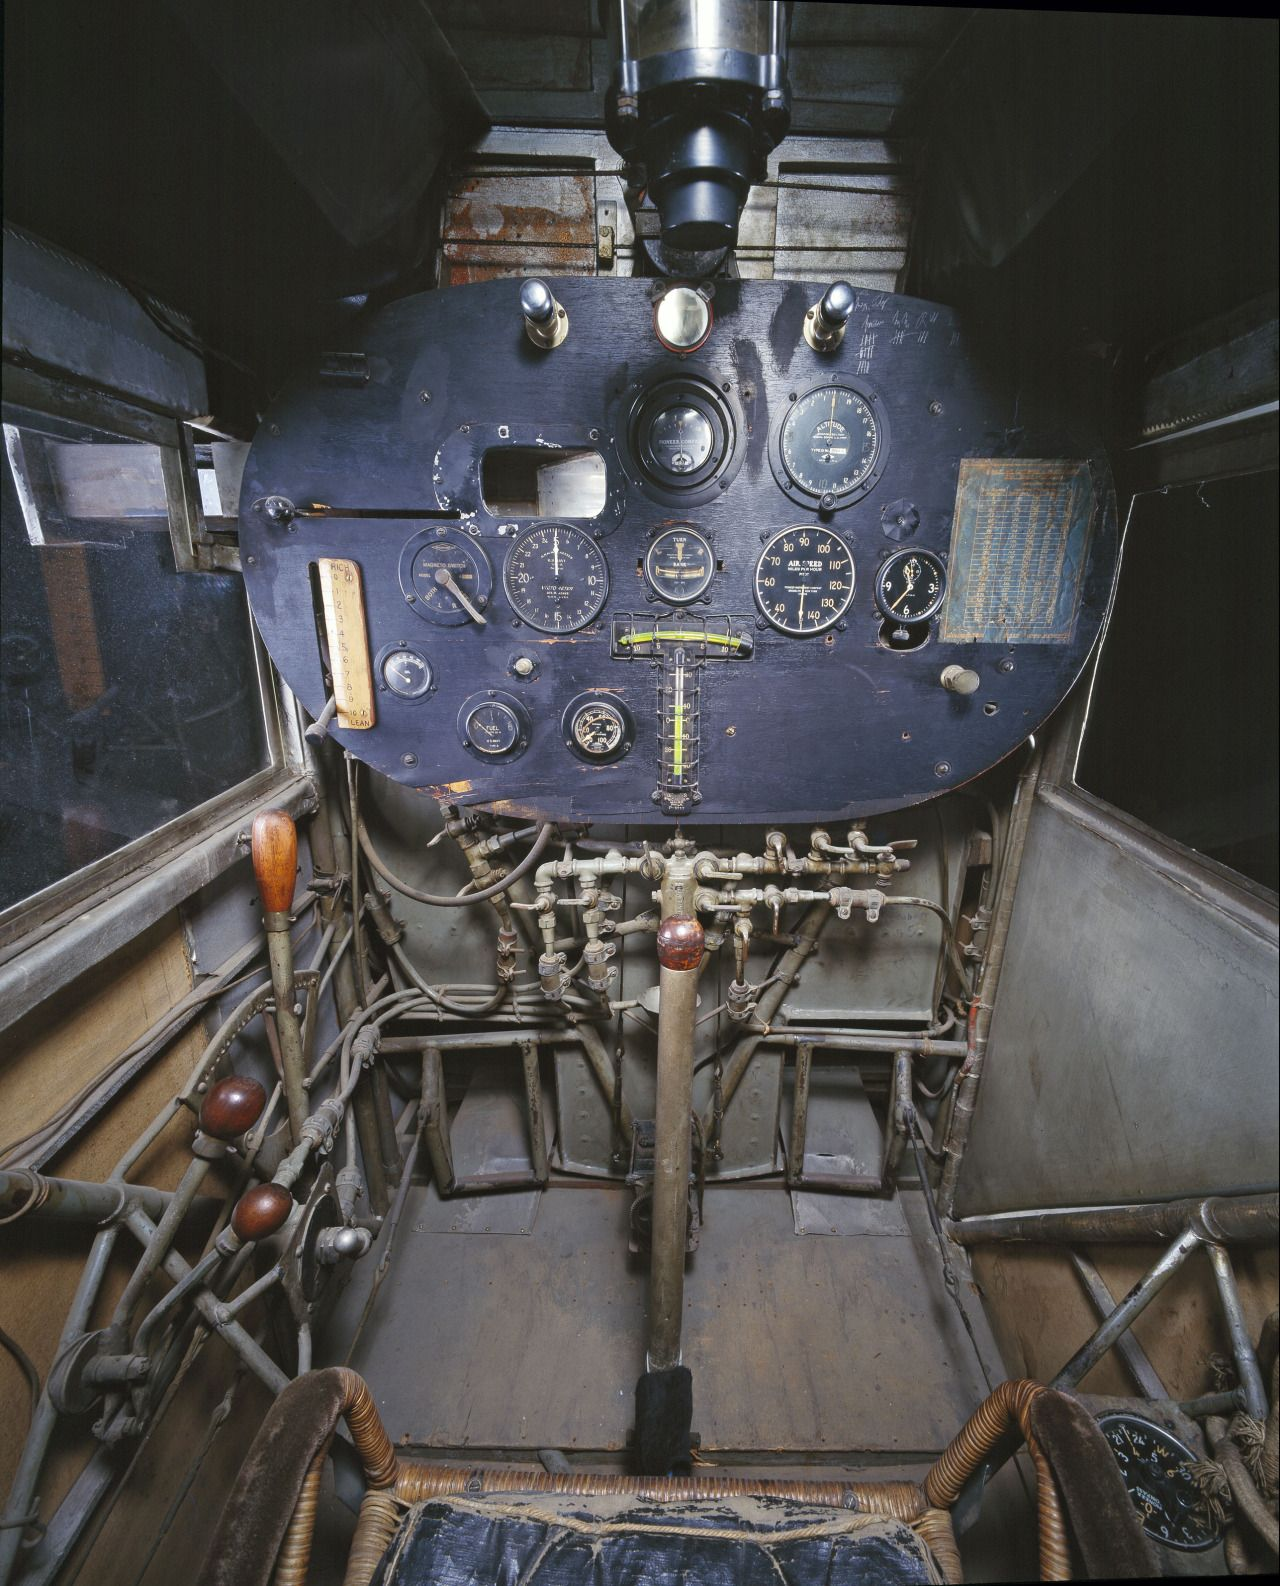 The cockpit of the Spirit of St. Louis, the first aircraft to complete a non-stop transatlantic flight